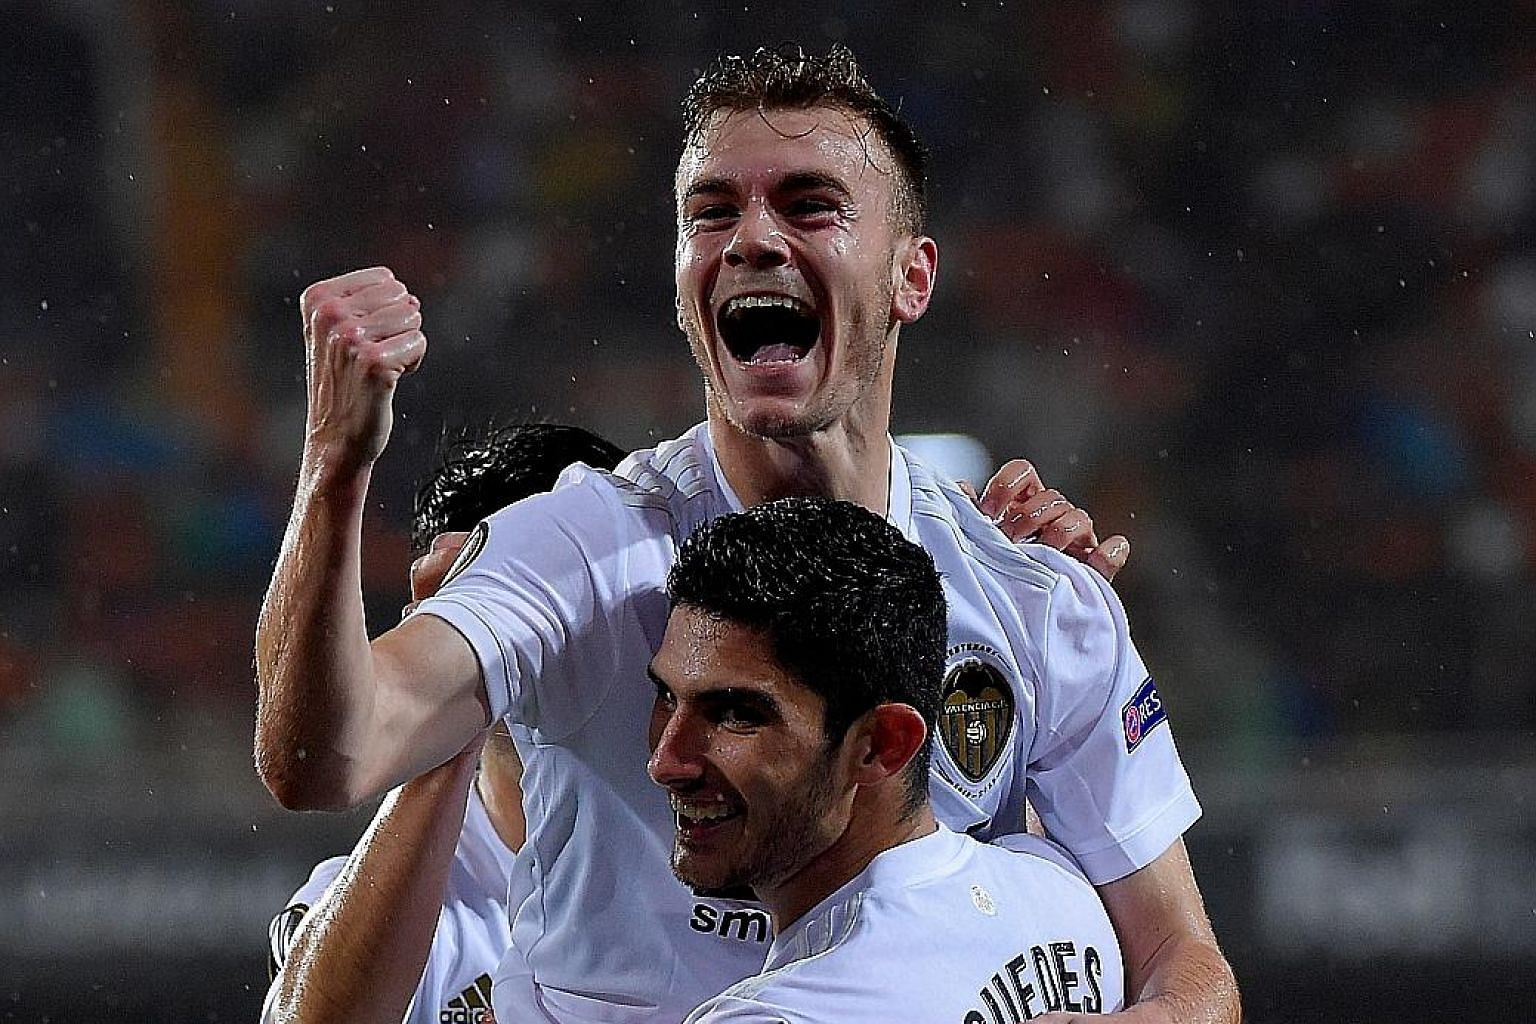 Valencia's Spanish defender Toni Lato celebrating with Portuguese midfielder Goncalo Guedes after putting them in the lead against Villarreal in the Europa League quarter-final second leg at the Mestalla.